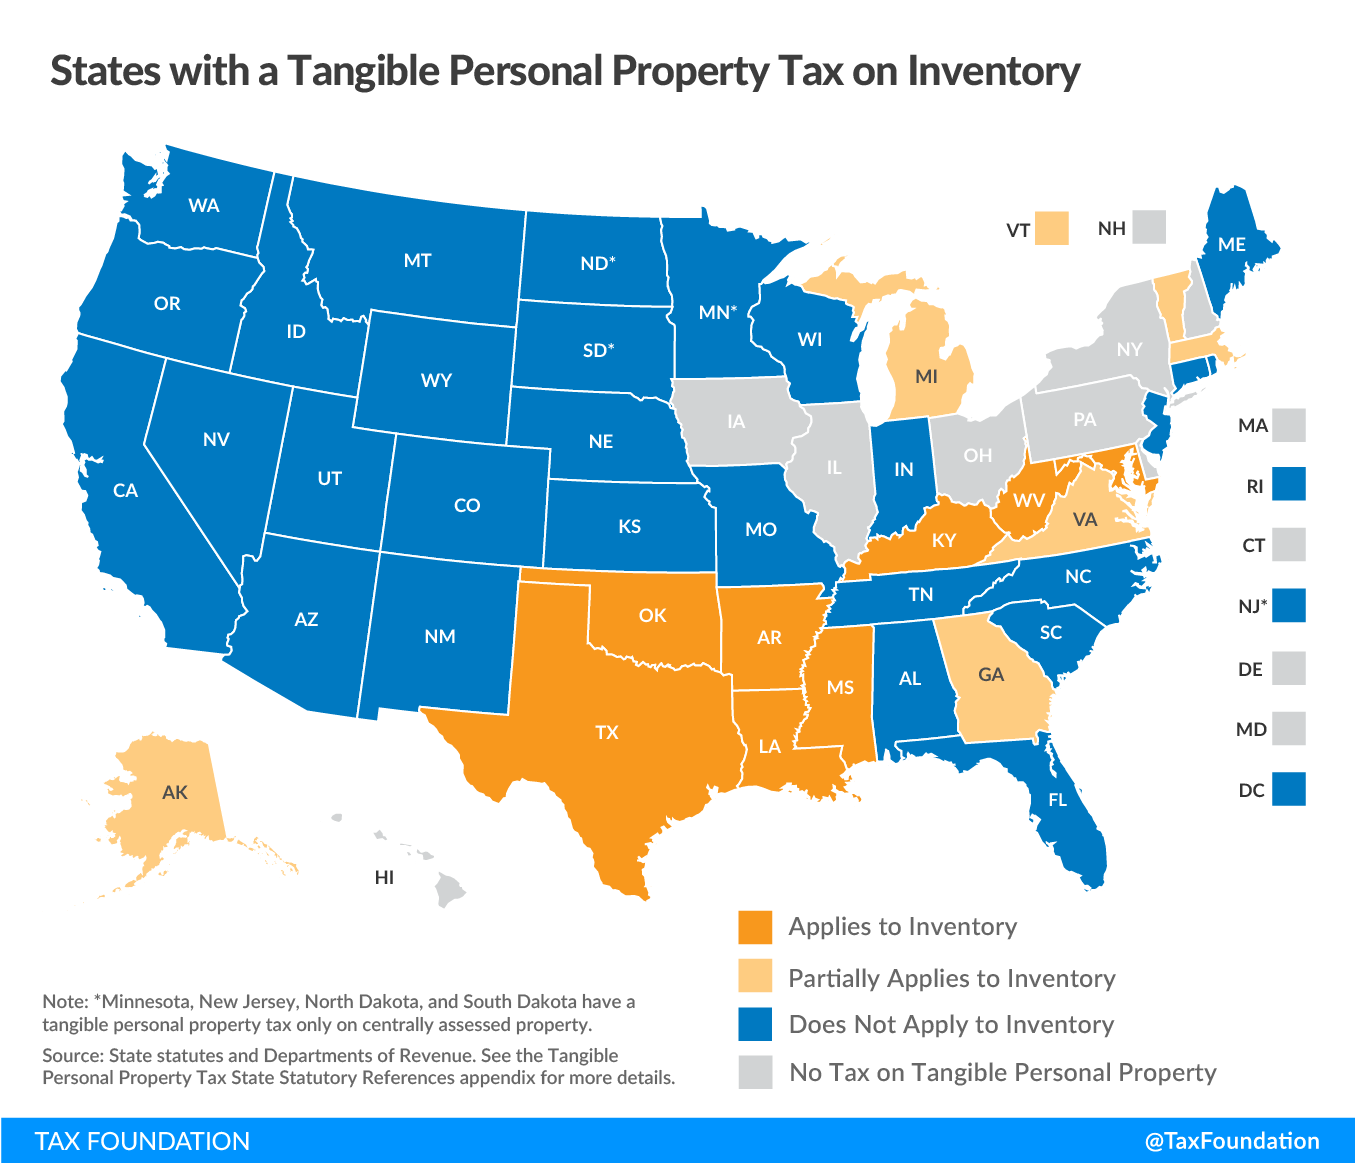 tangible personal property tax liability, state tangible personal property taxes